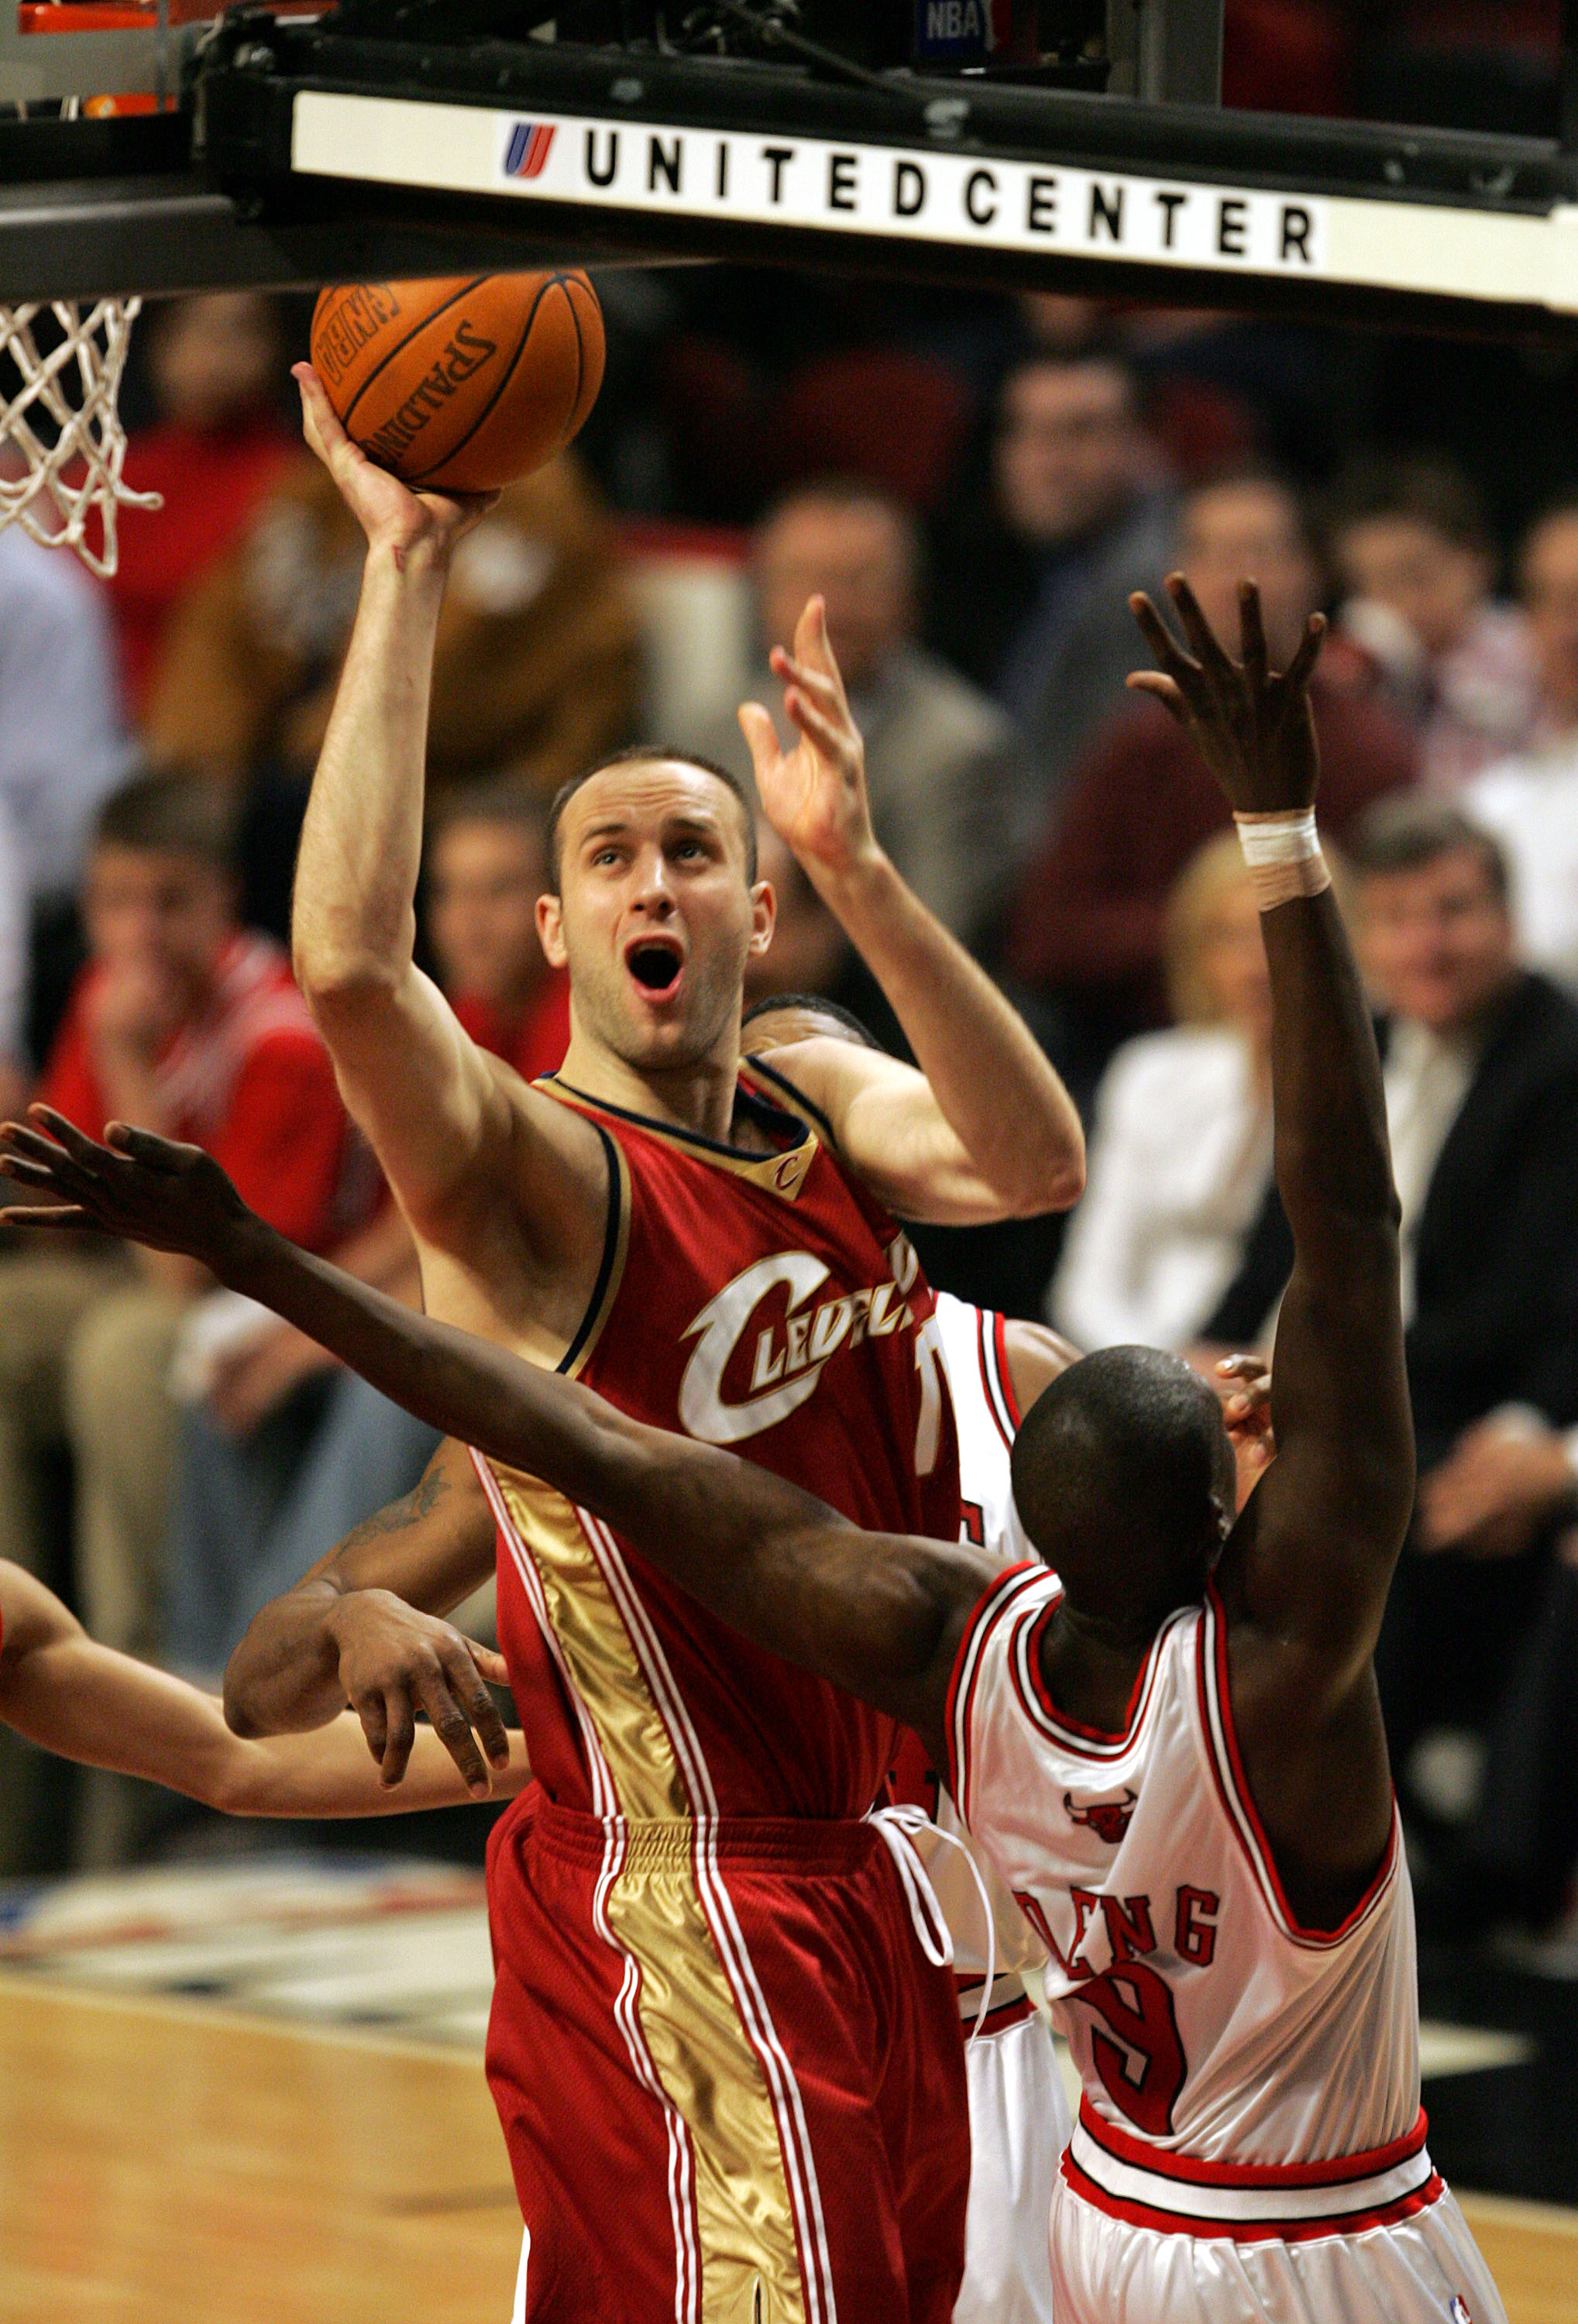 CHICAGO - MARCH 31:  Zydrunas Ilgauskas #11 of the Cleveland Cavaliers shoots over Luol Deng #9 of the Chicago Bulls during the game on March 31, 2005 at the United Center in Chicago, Illinois. The Bulls defeated the Cavaliers 102-90 in overtime. NOTE TO